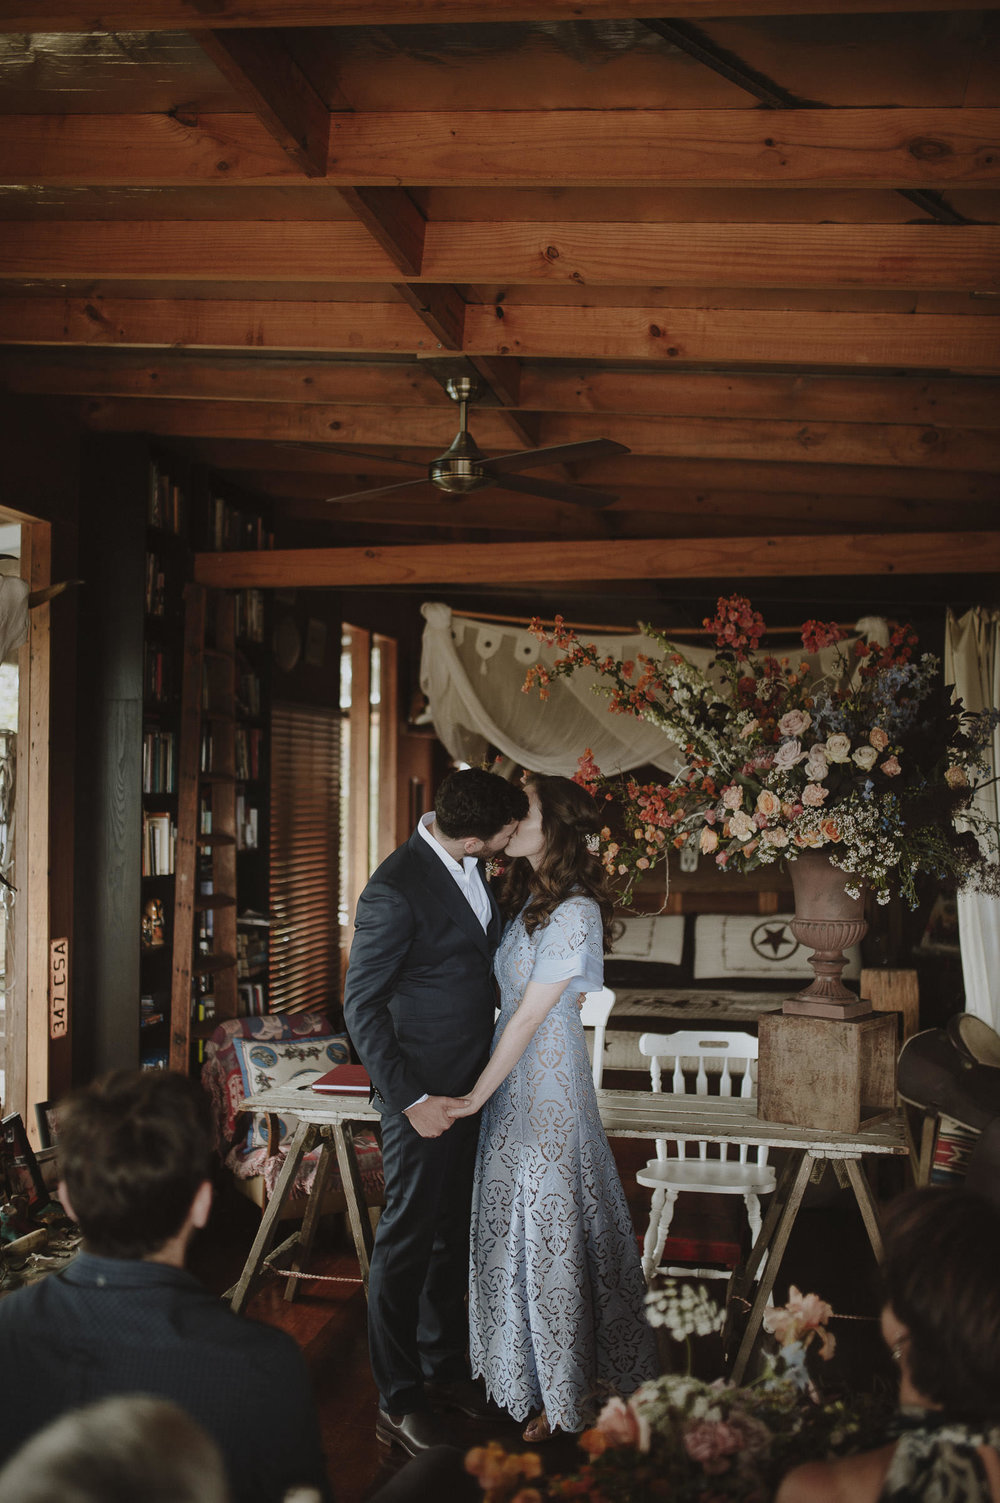 Michael_April_Bucketty_Antelopement_Blog-37.jpg